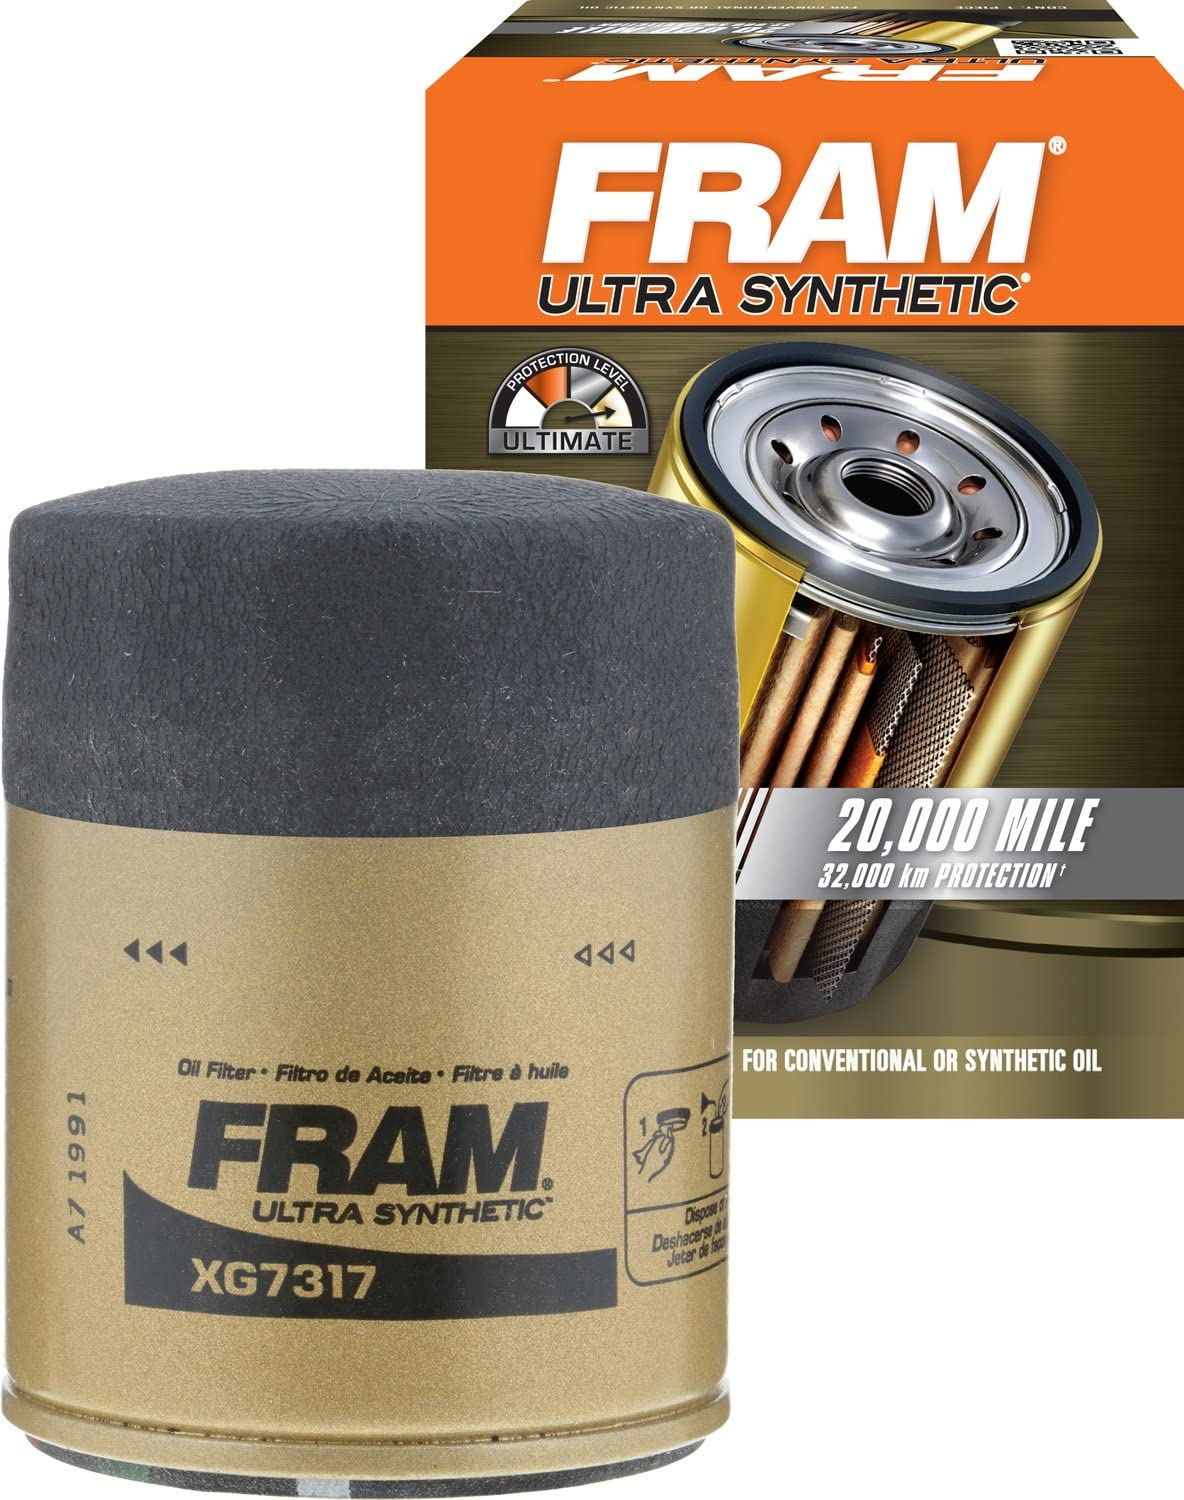 FRAM Oil Filter (with a grip)